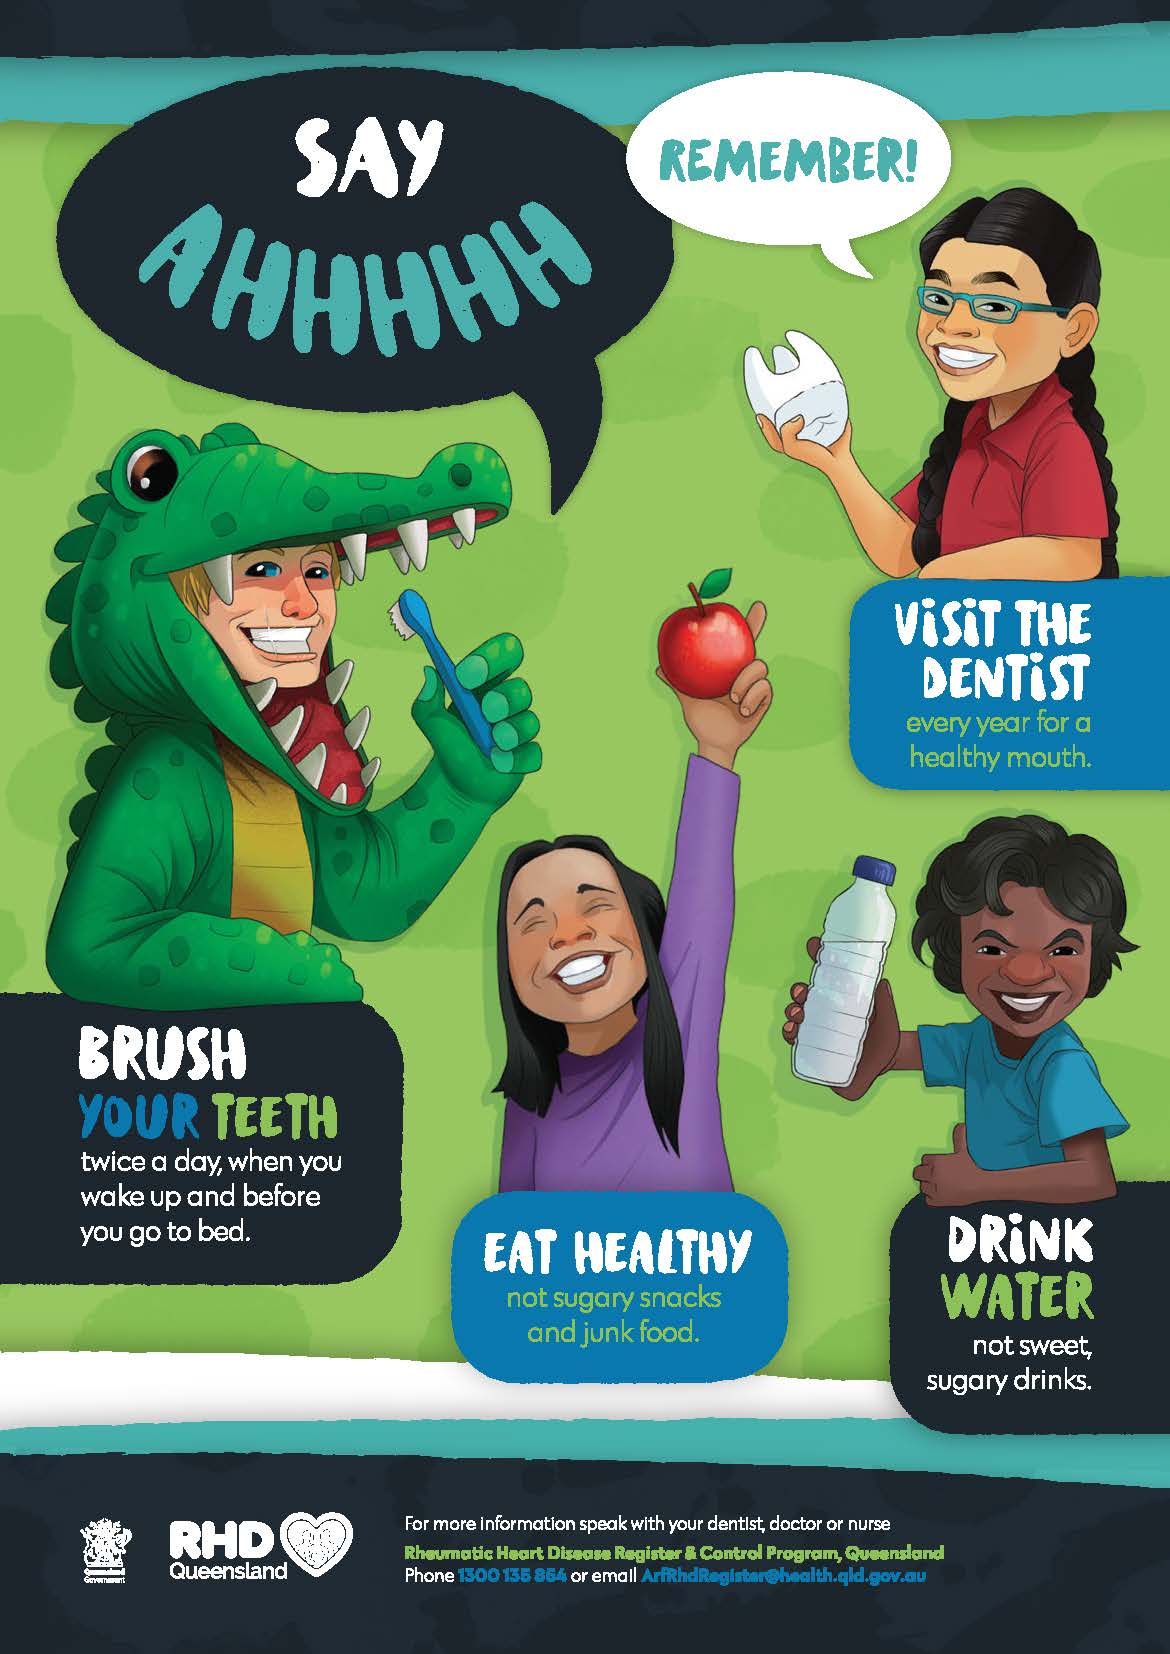 Remember to visit the dentist every year; brush your teeth twice a day, when you wake up and before you go to bed; eat healthy, not sugary snacks and junk food; and drink water, not sweet, sugary drinks.